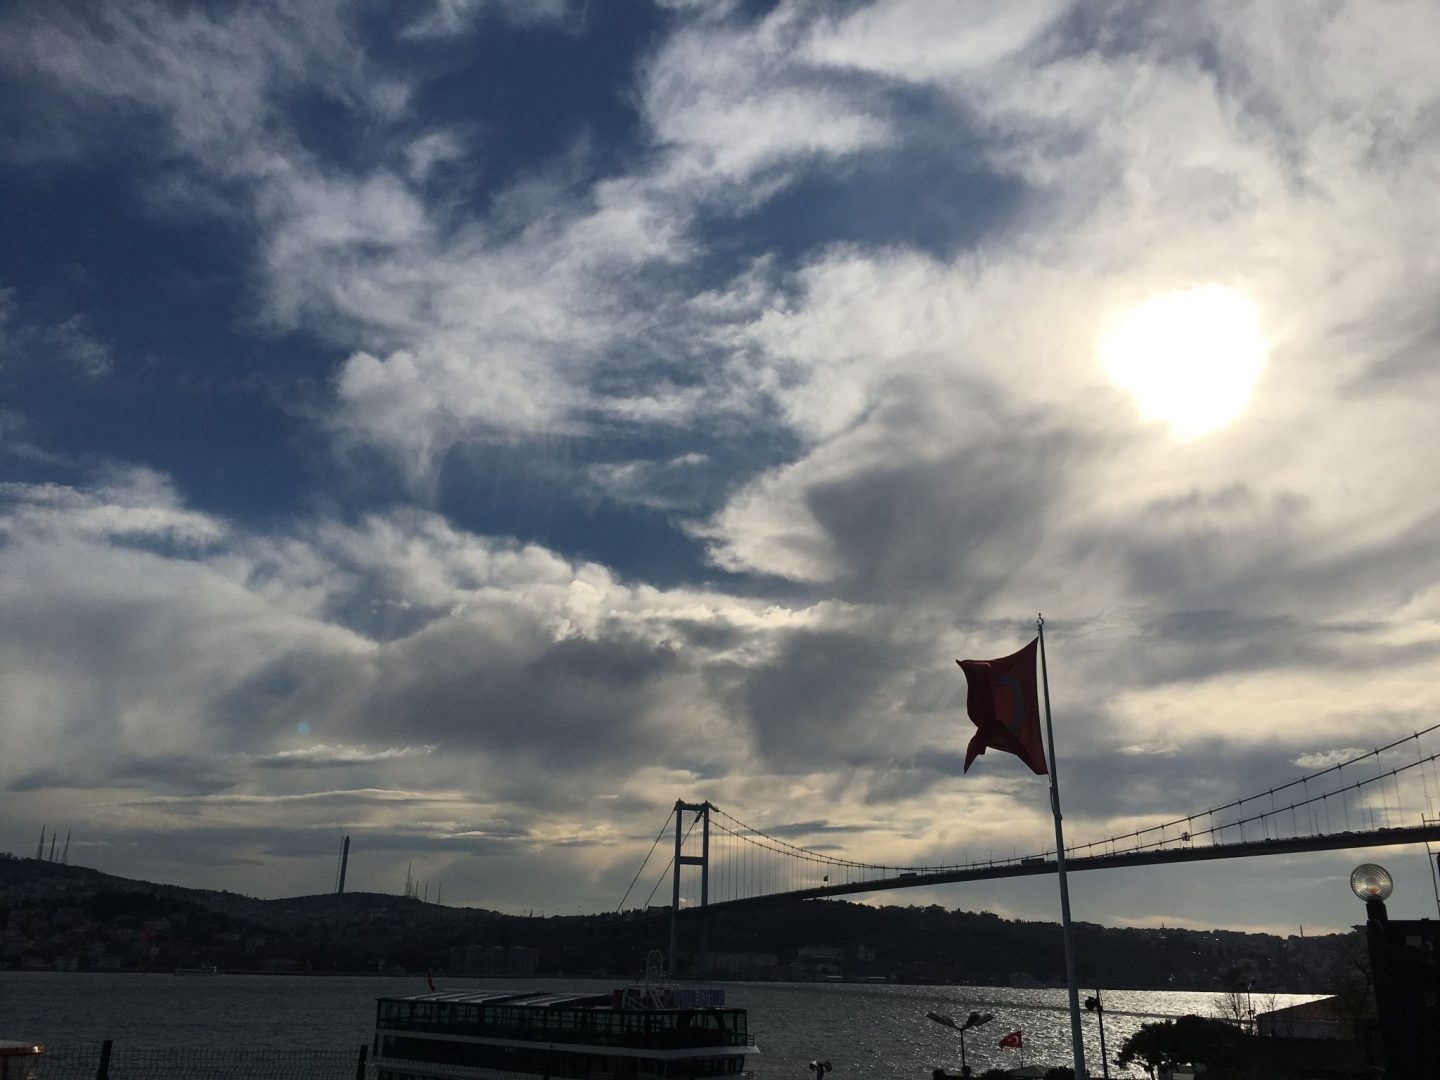 Istanbul 2 day travel guide – what to see and do